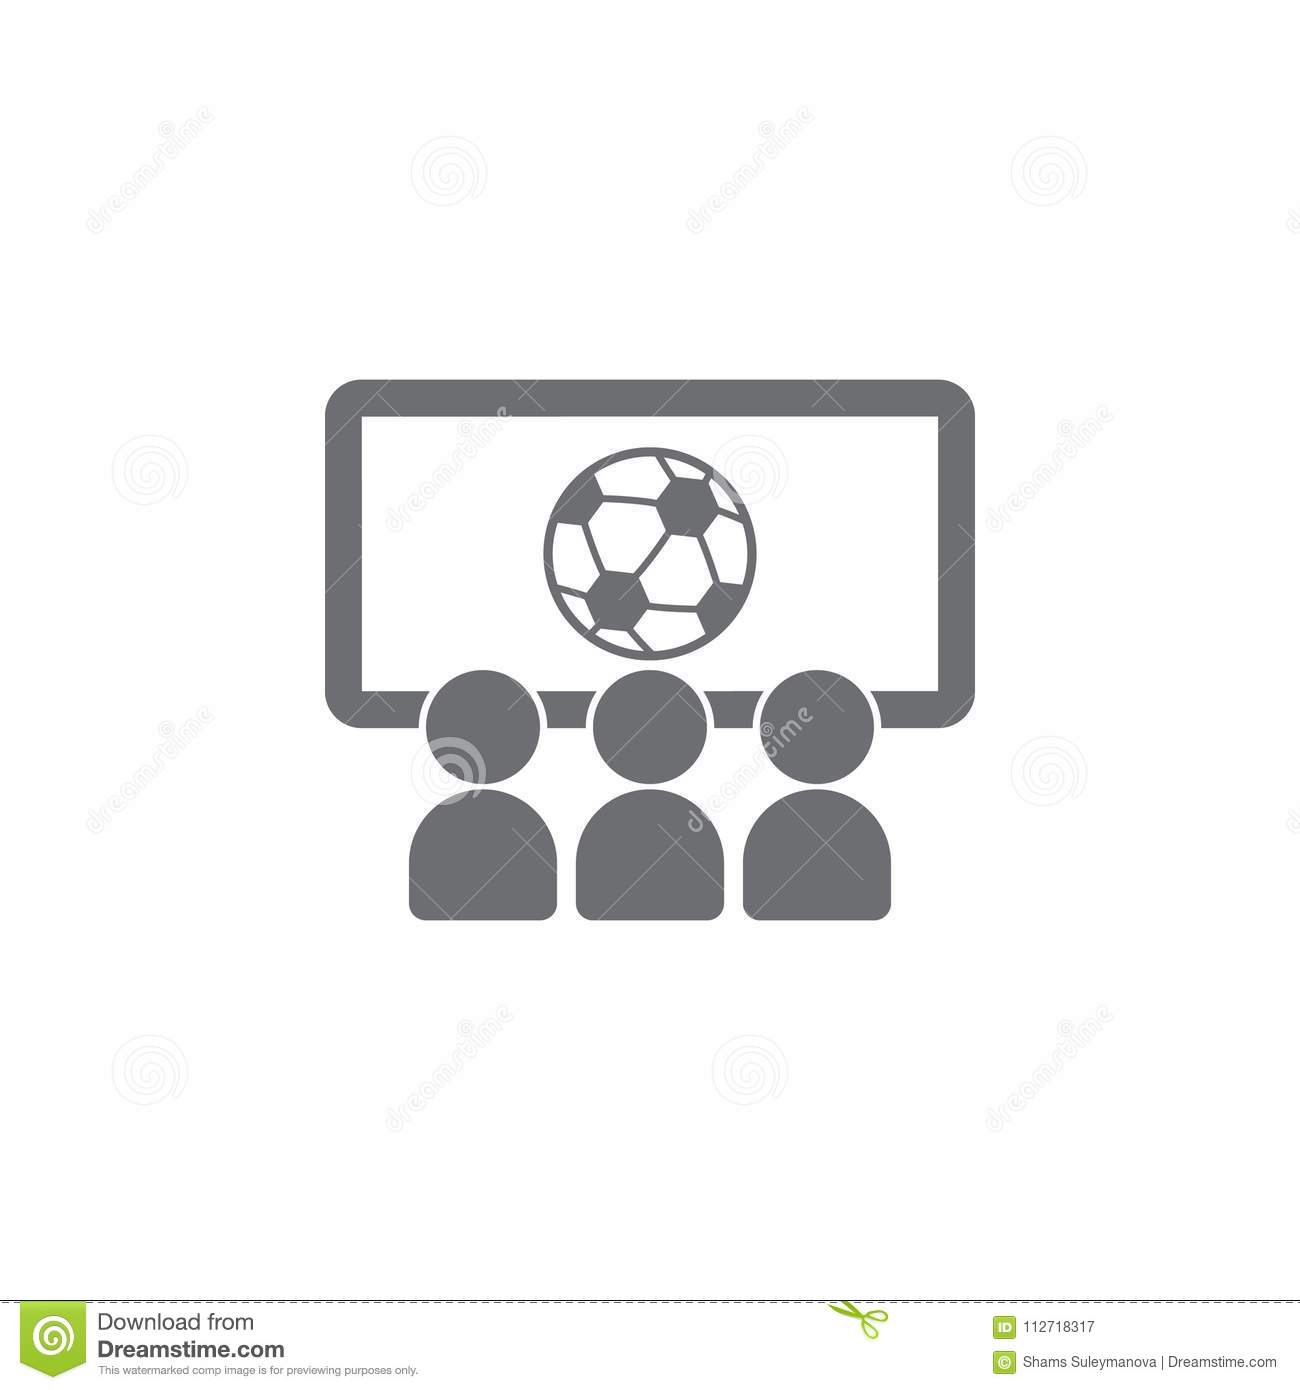 viewing a football match icon simple element illustration viewing a football match symbol design template can be used for web a stock illustration illustration of match goal 112718317 dreamstime com